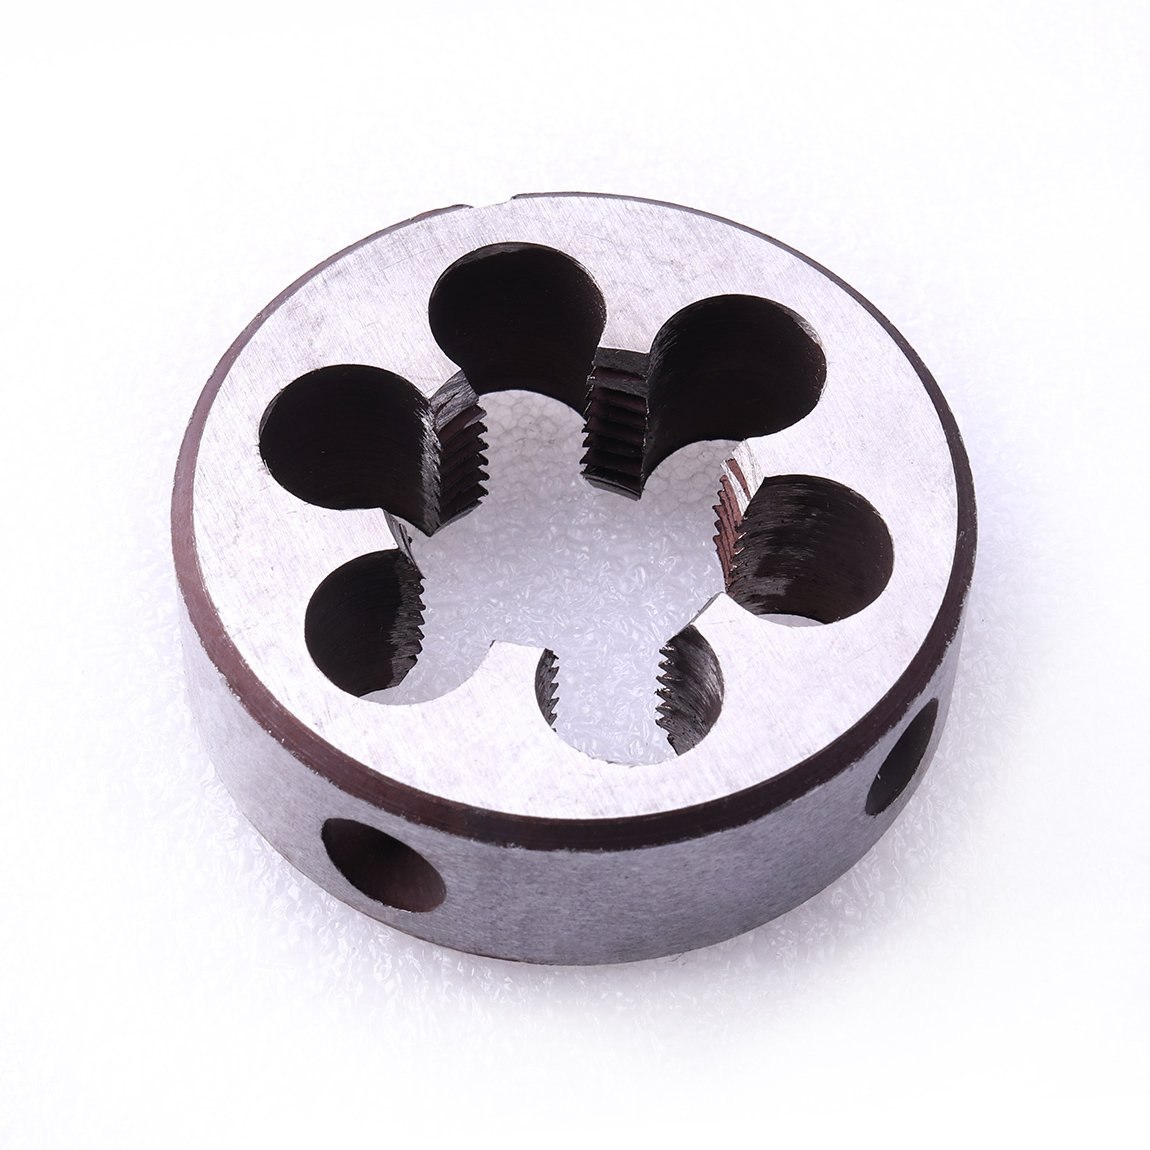 Atoplee Metric Right Hand Thread Die M20 1.5, 1pc